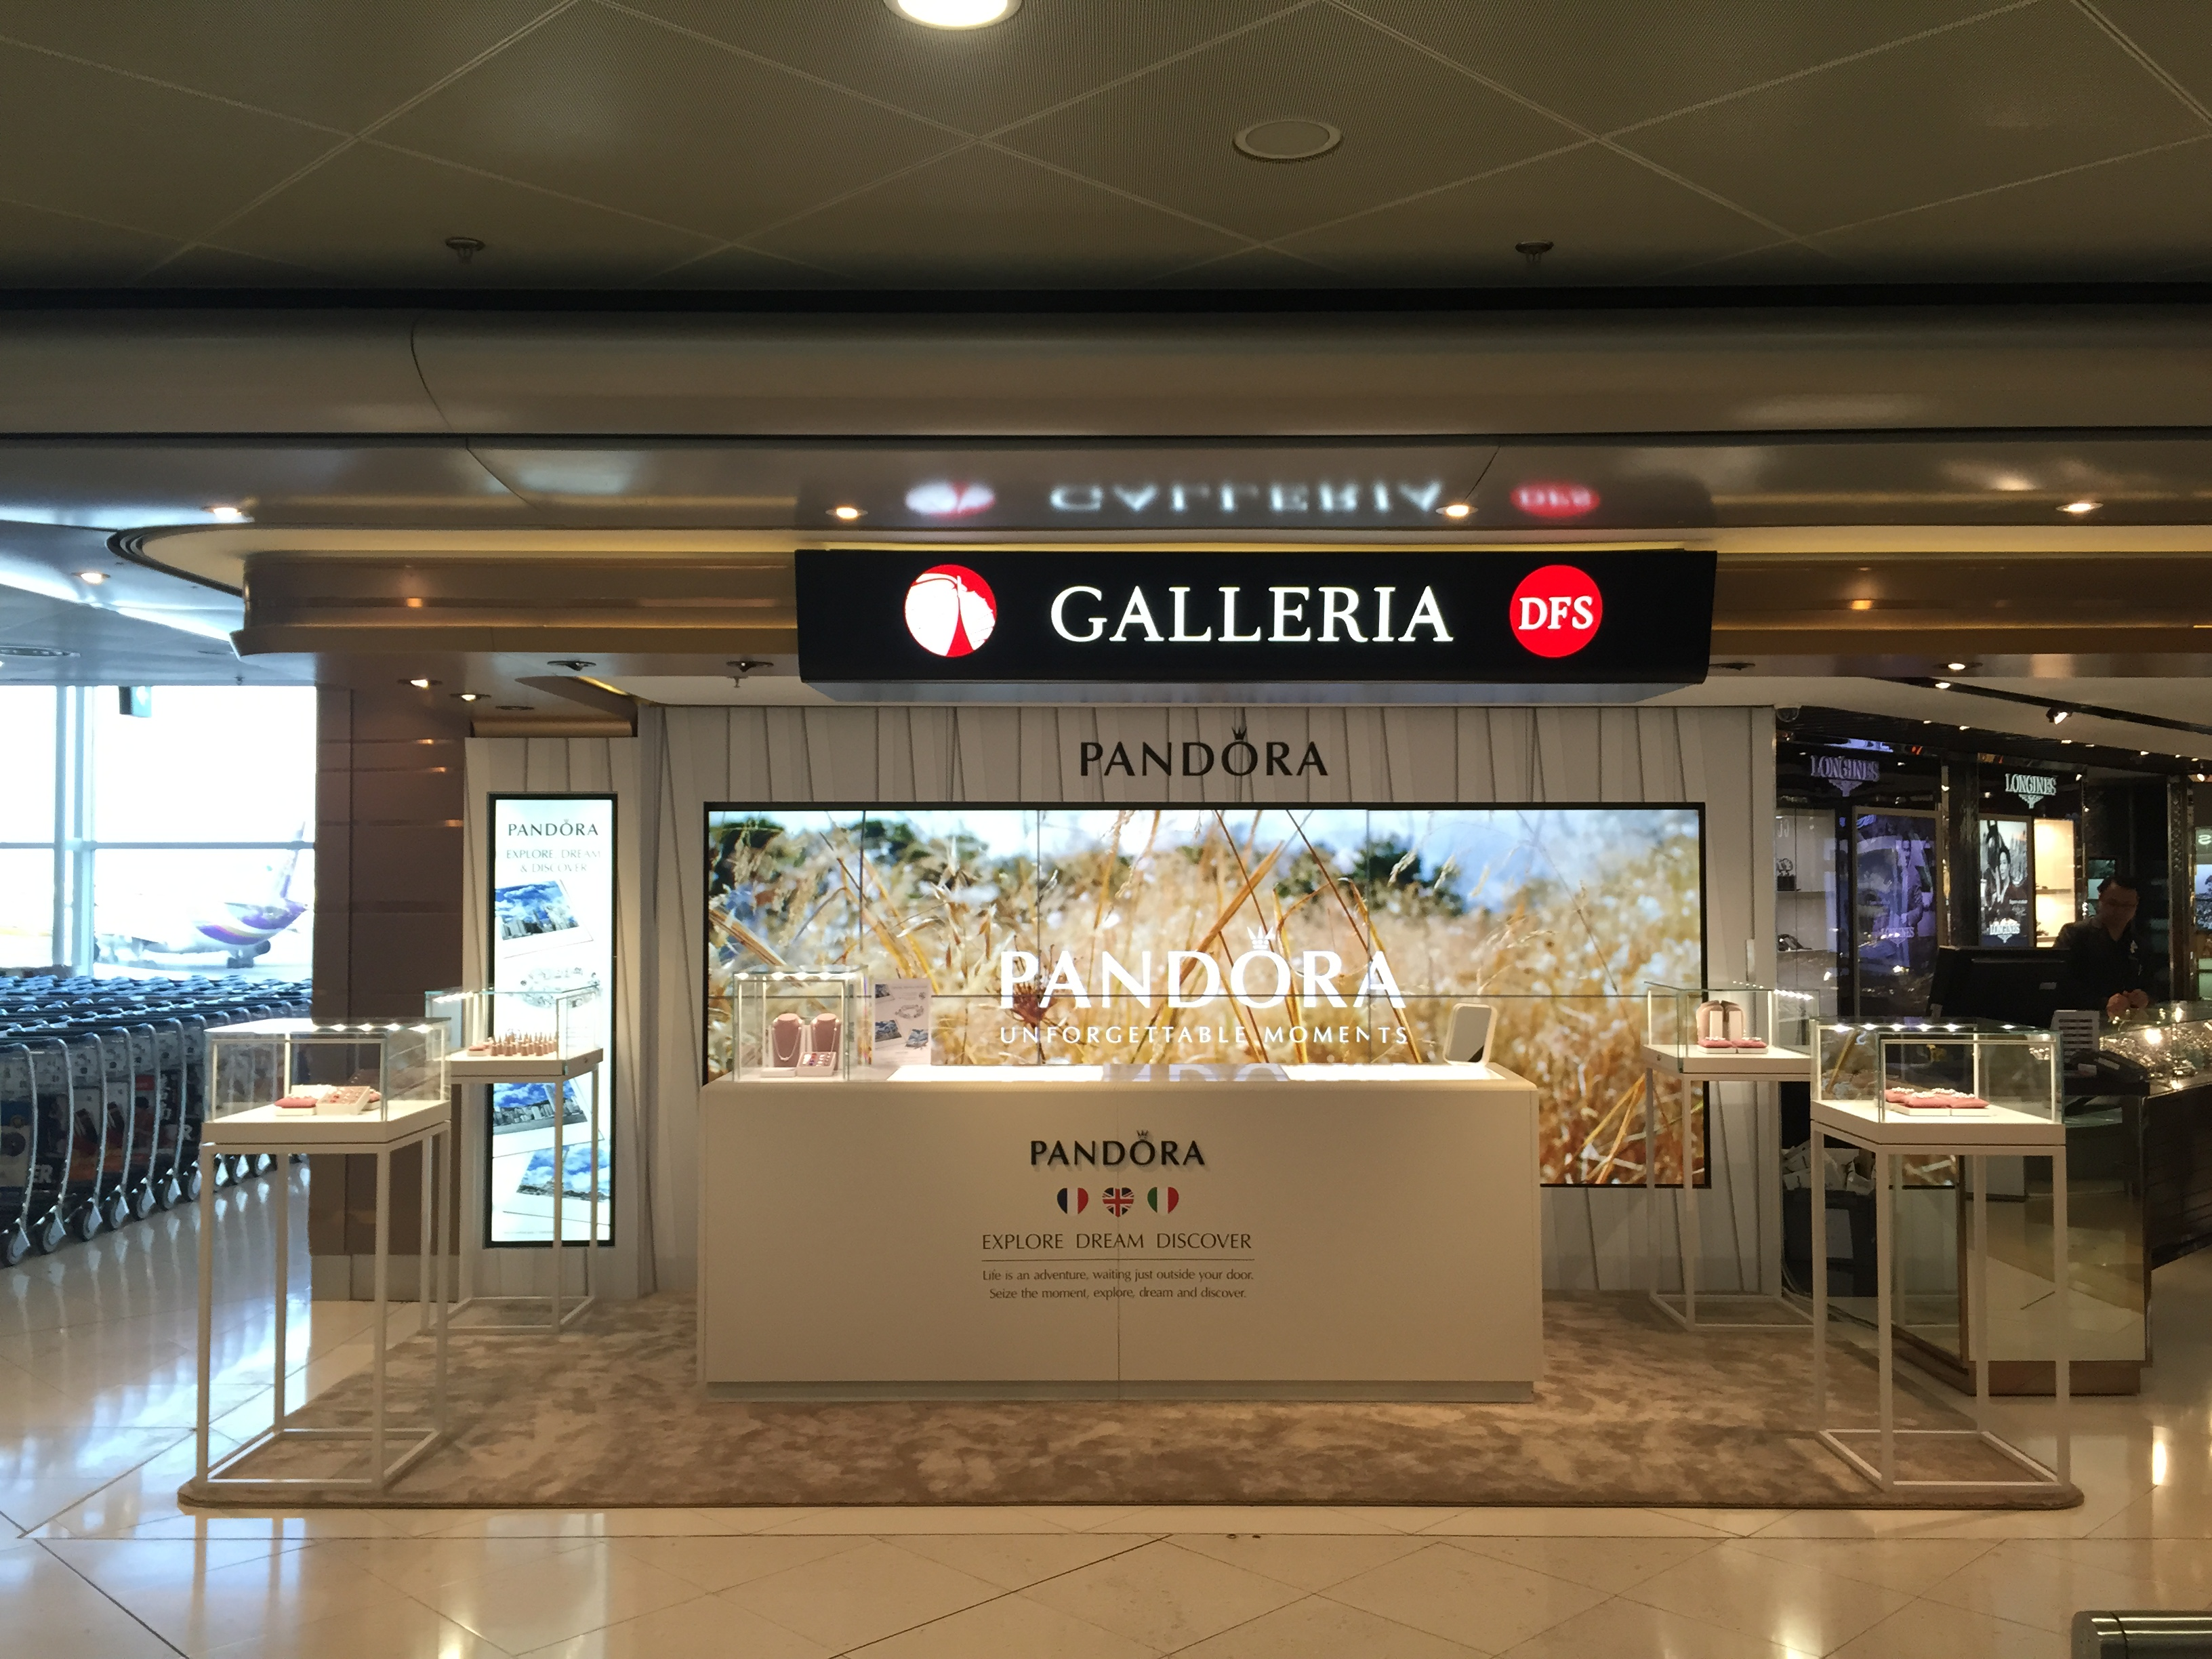 Pandora teams up with DFS for special promo space at HKIA